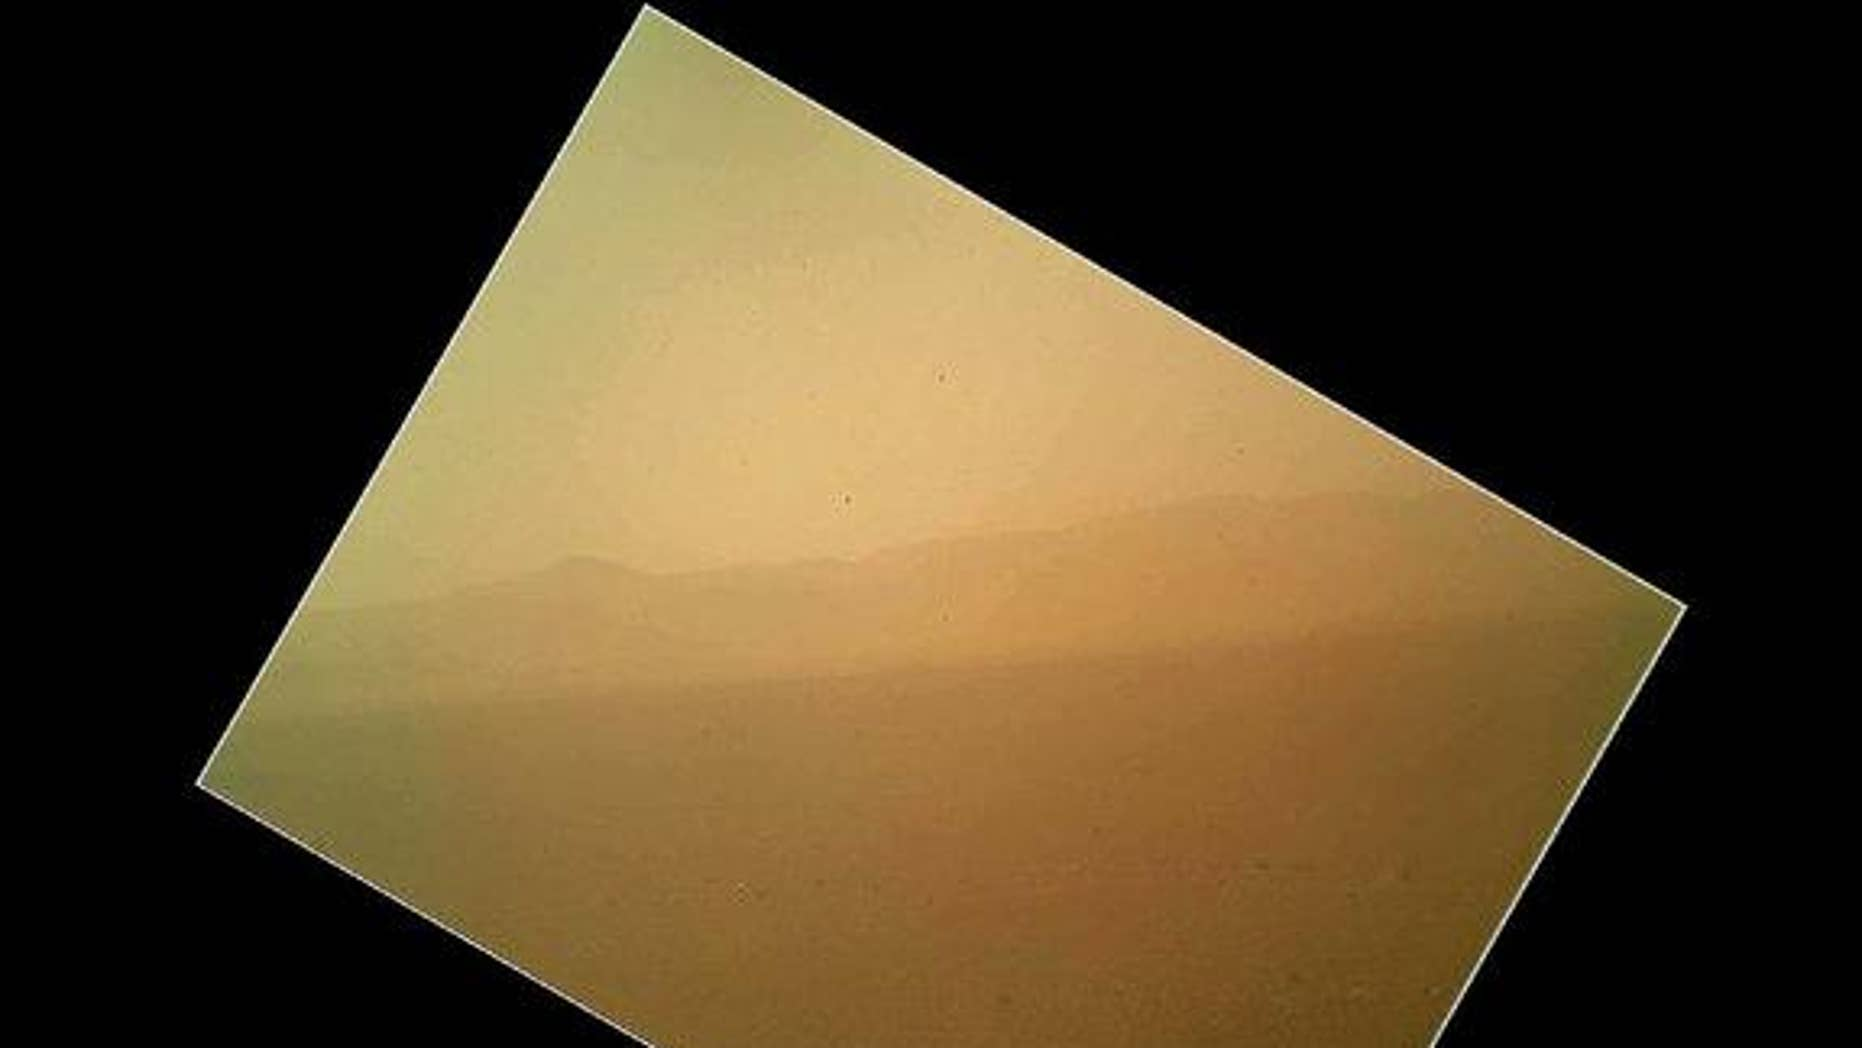 This photo taken by NASA's Mars rover Curiosity shows the north wall and rim of Gale Crater. The image is the first color photo snapped by Curiosity's Mars Hand Lens Imager (MAHLI) on the afternoon of the first day after landing. NASA released